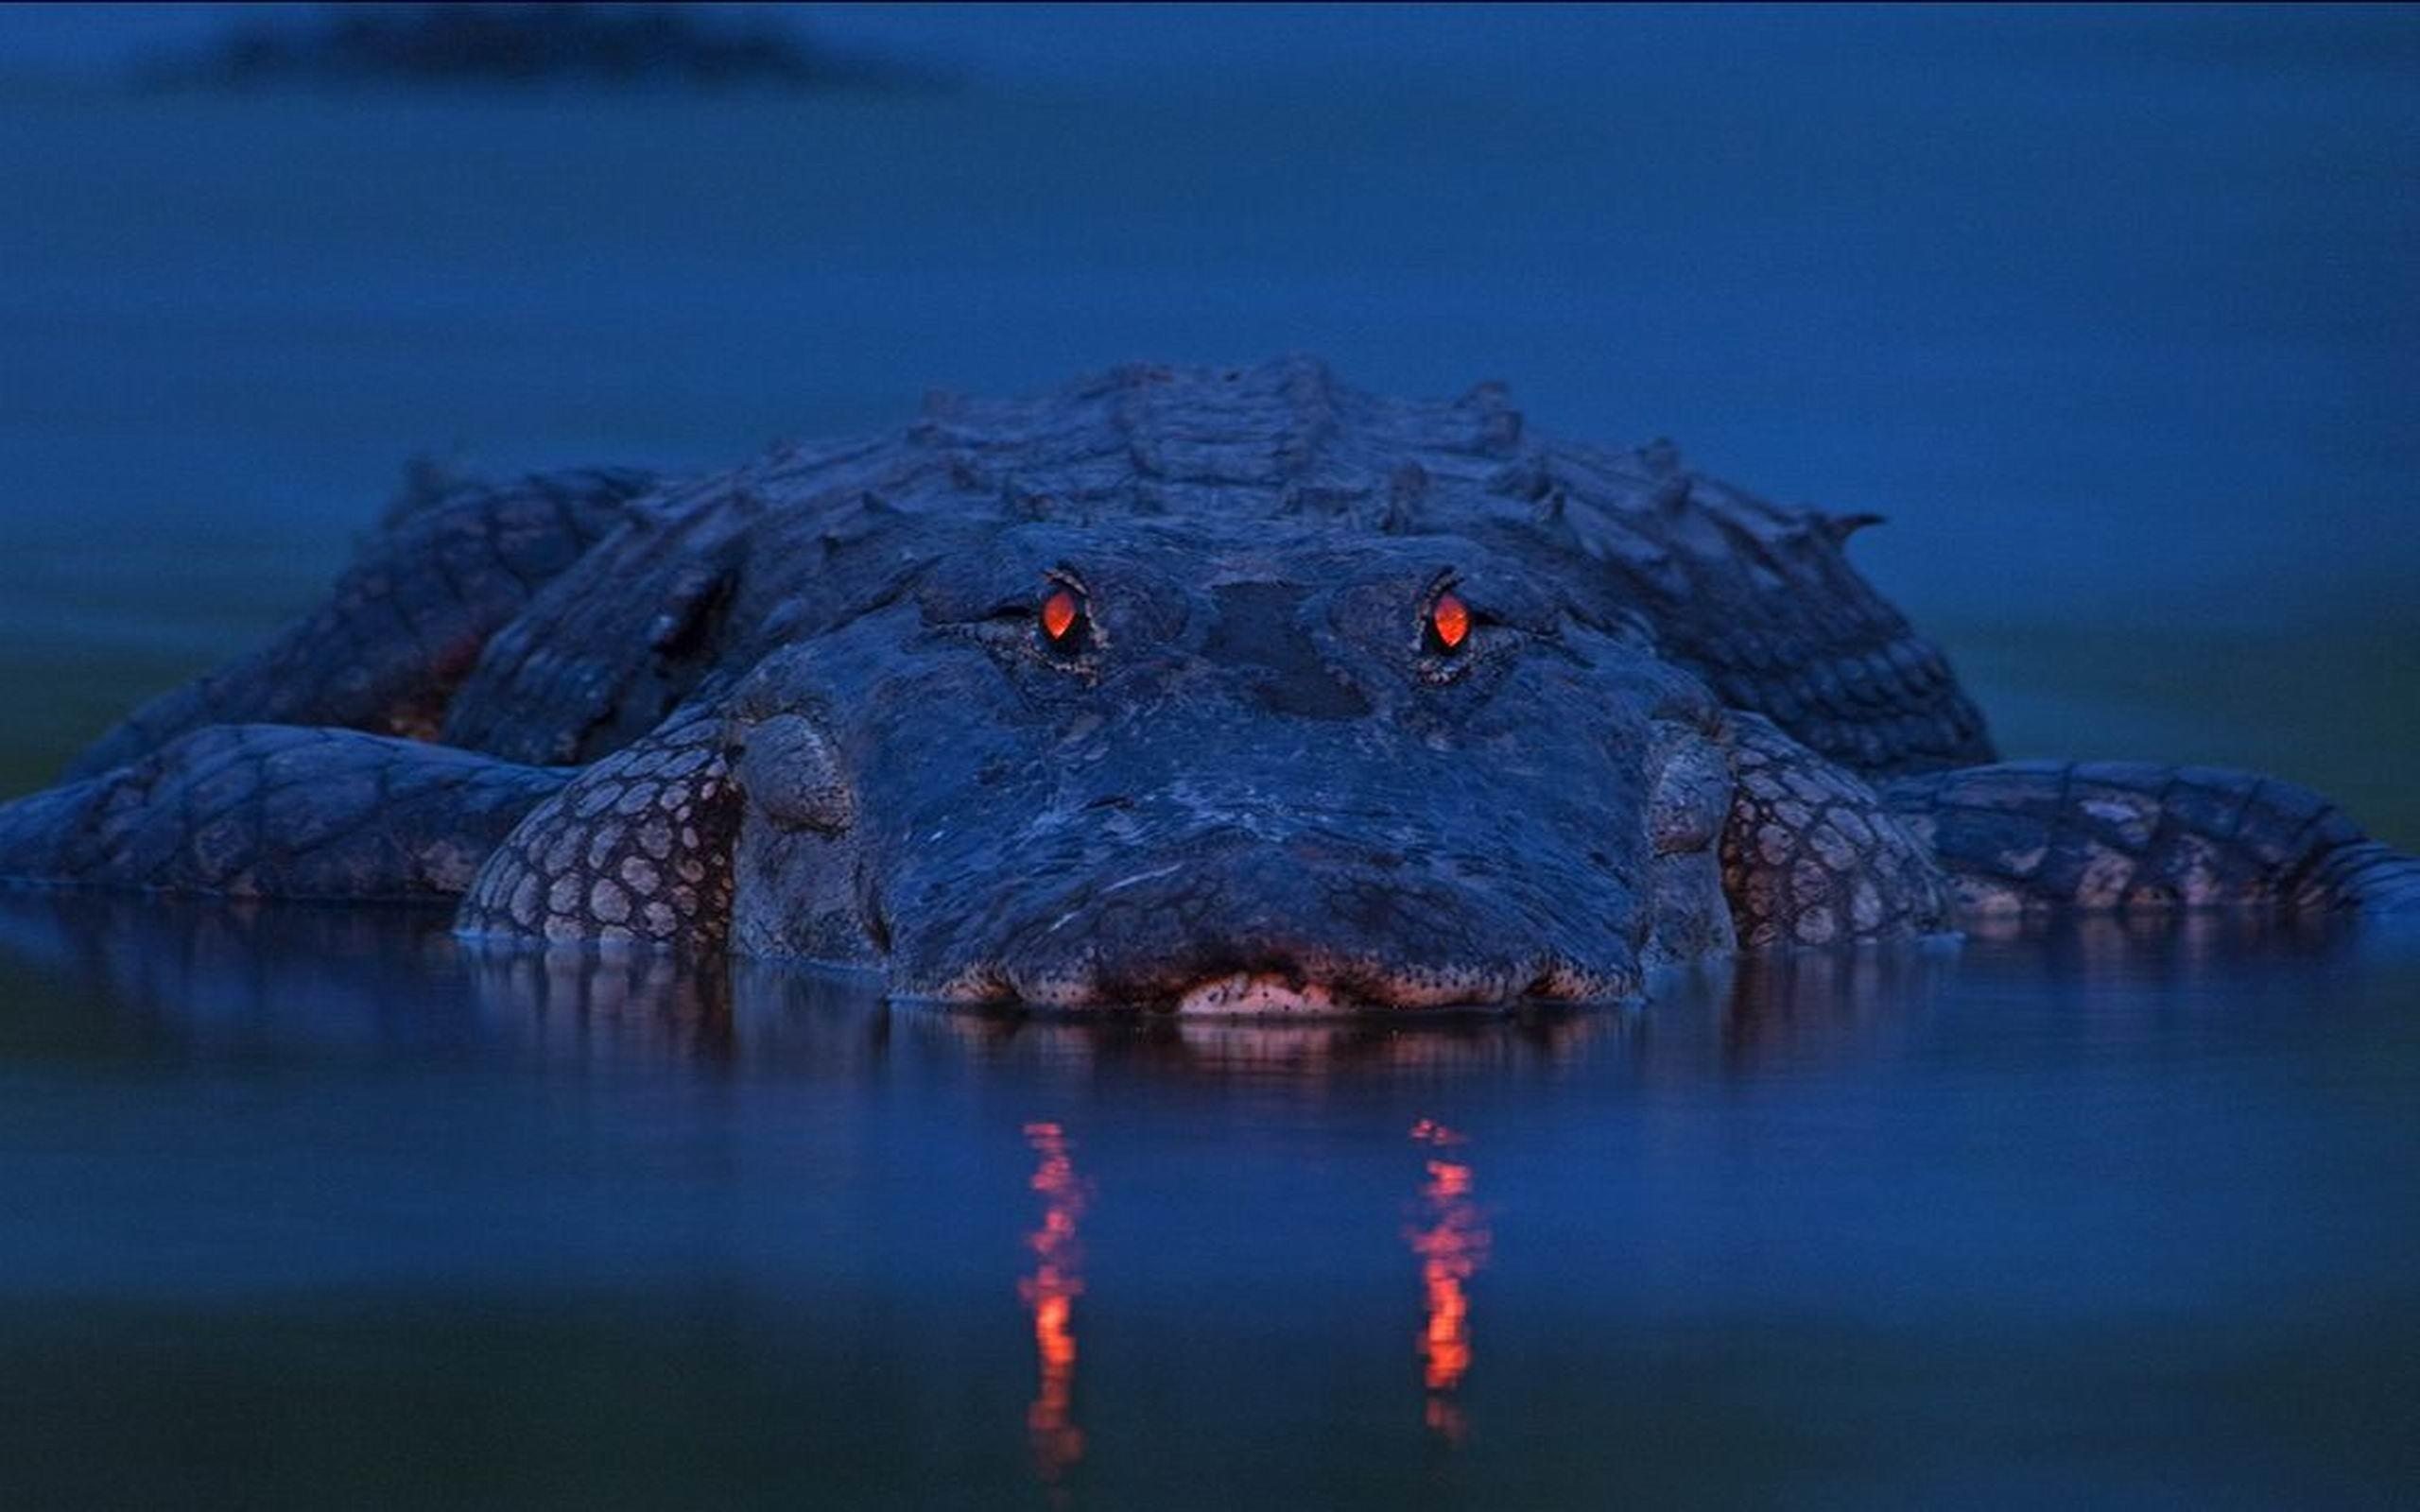 Alligator Wallpapers and Background Images   stmednet 2560x1600